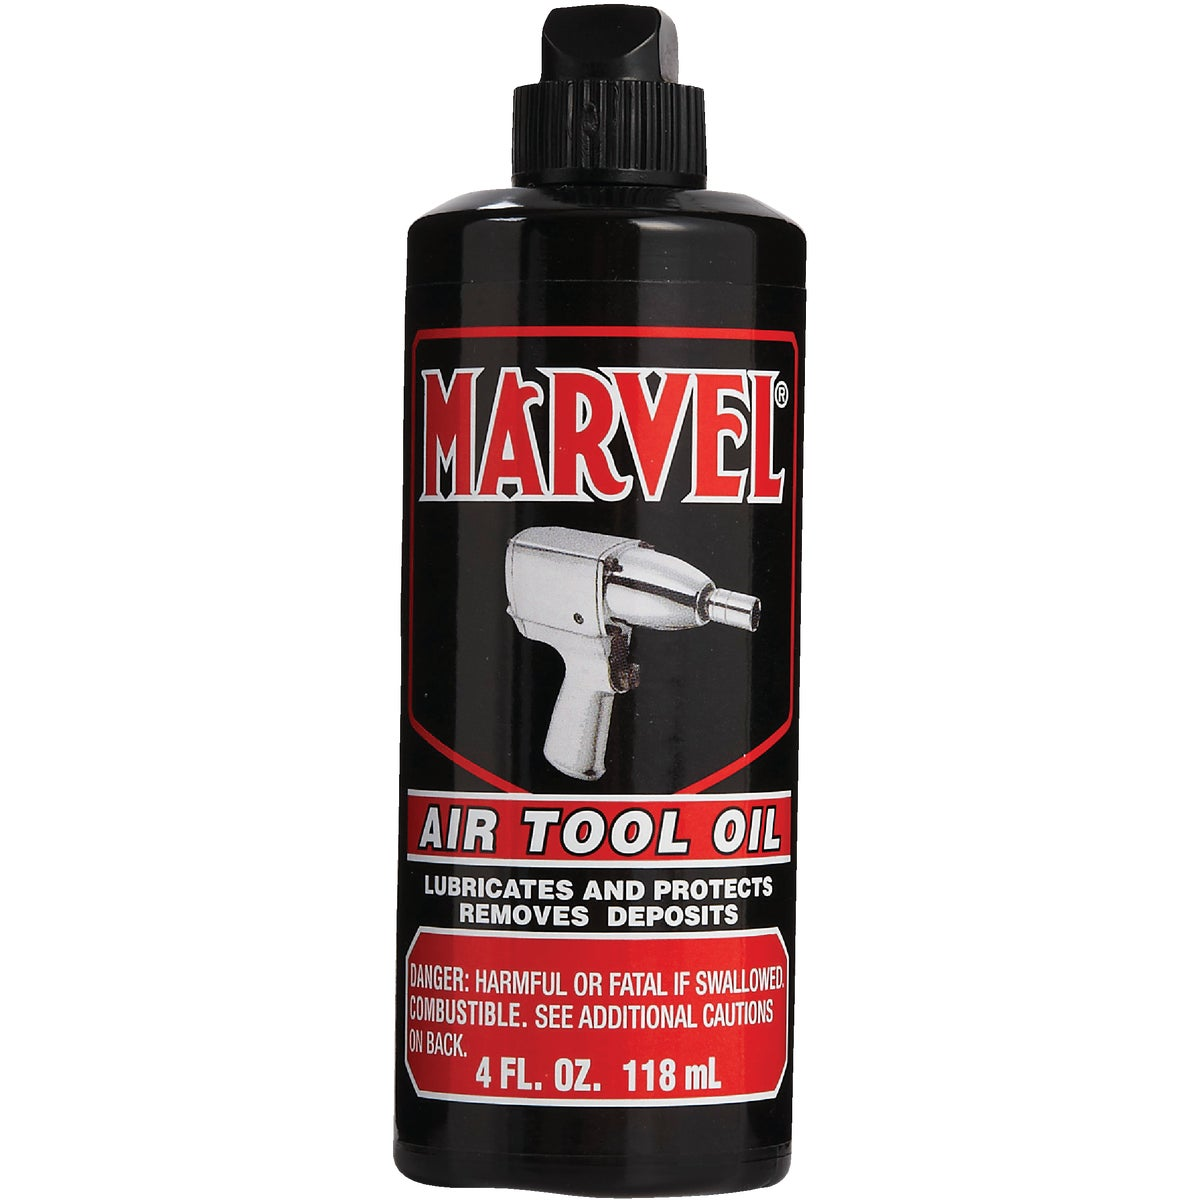 4OZ AIR TOOL OIL - MM080R by Turtle Wax Inc